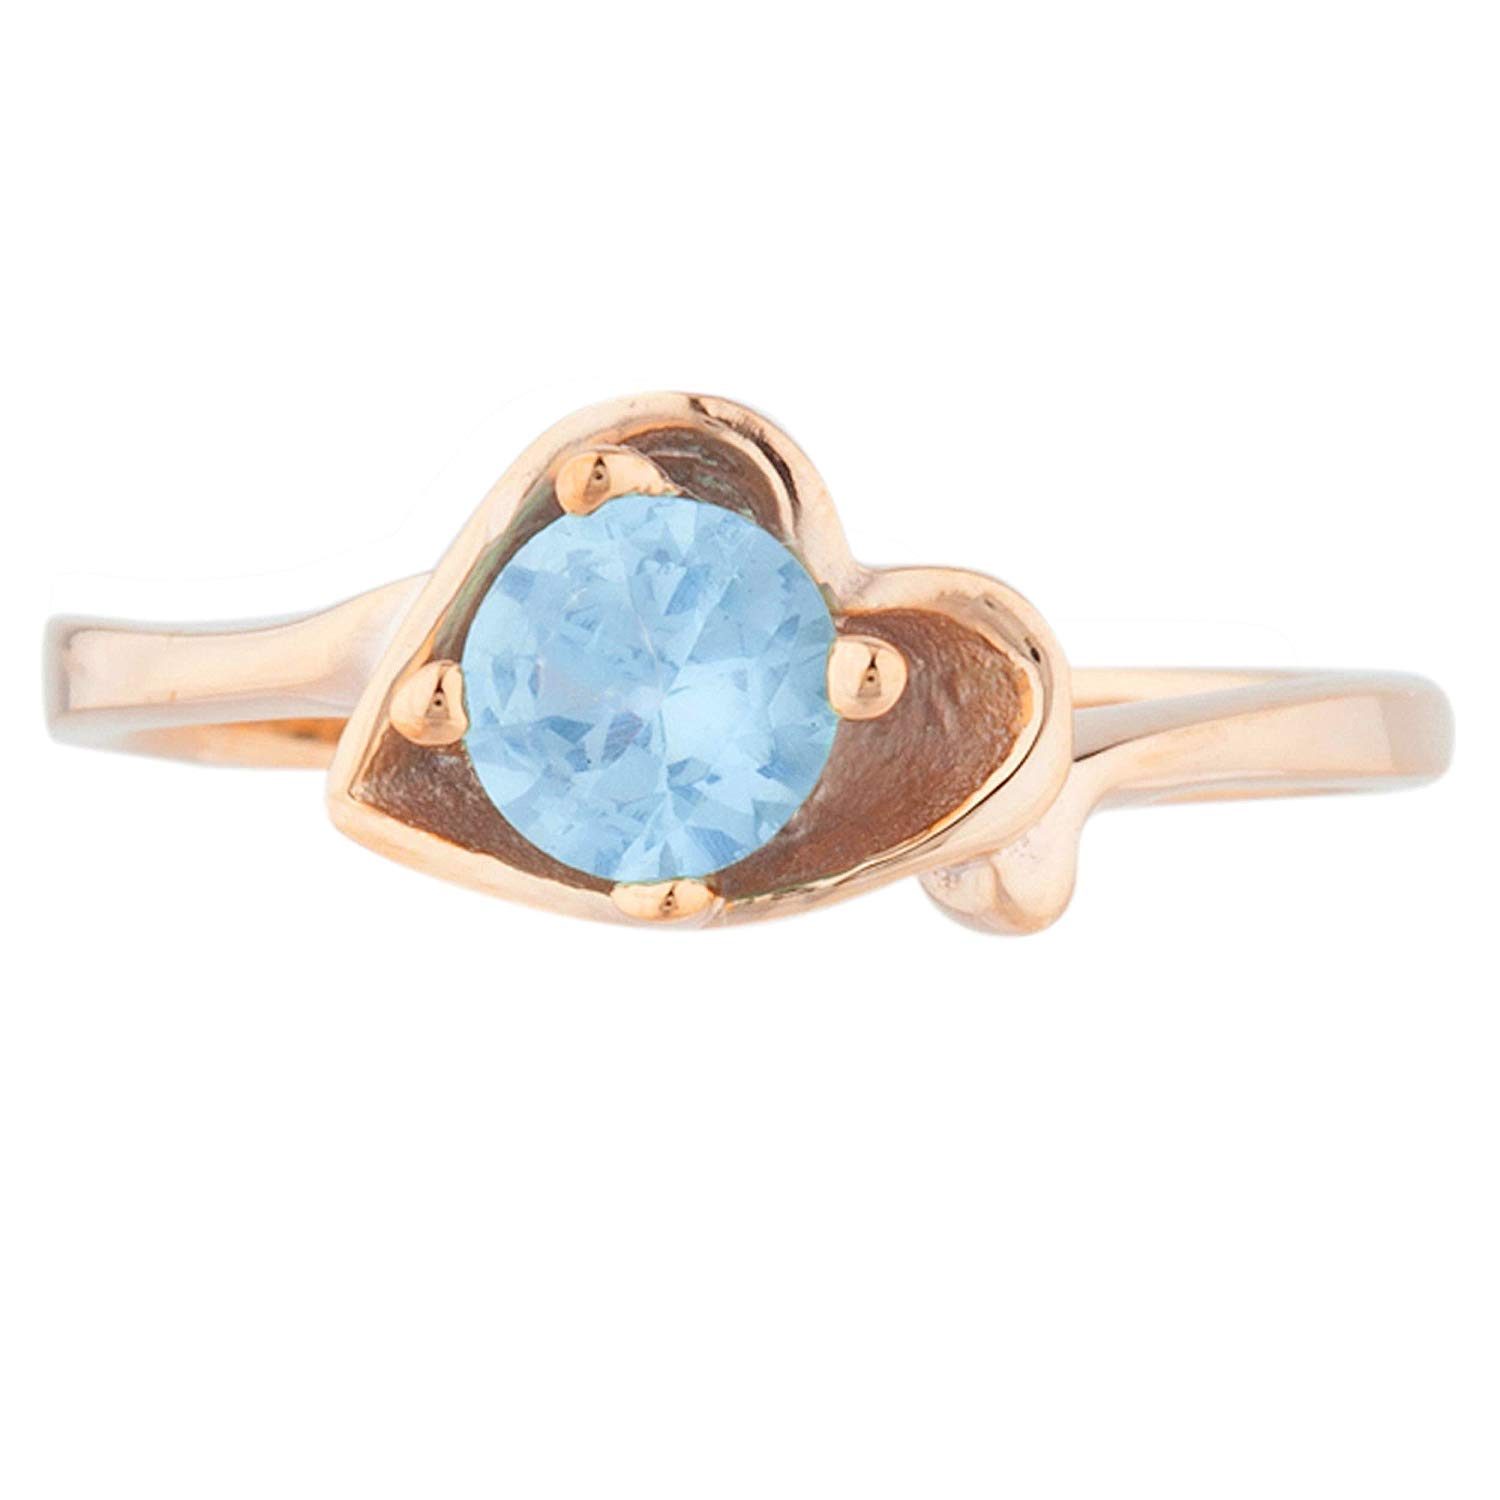 0.50 Ct Blue Topaz Round Heart Shape Ring 14Kt Rose Gold Plated Over .925 Sterling Silver